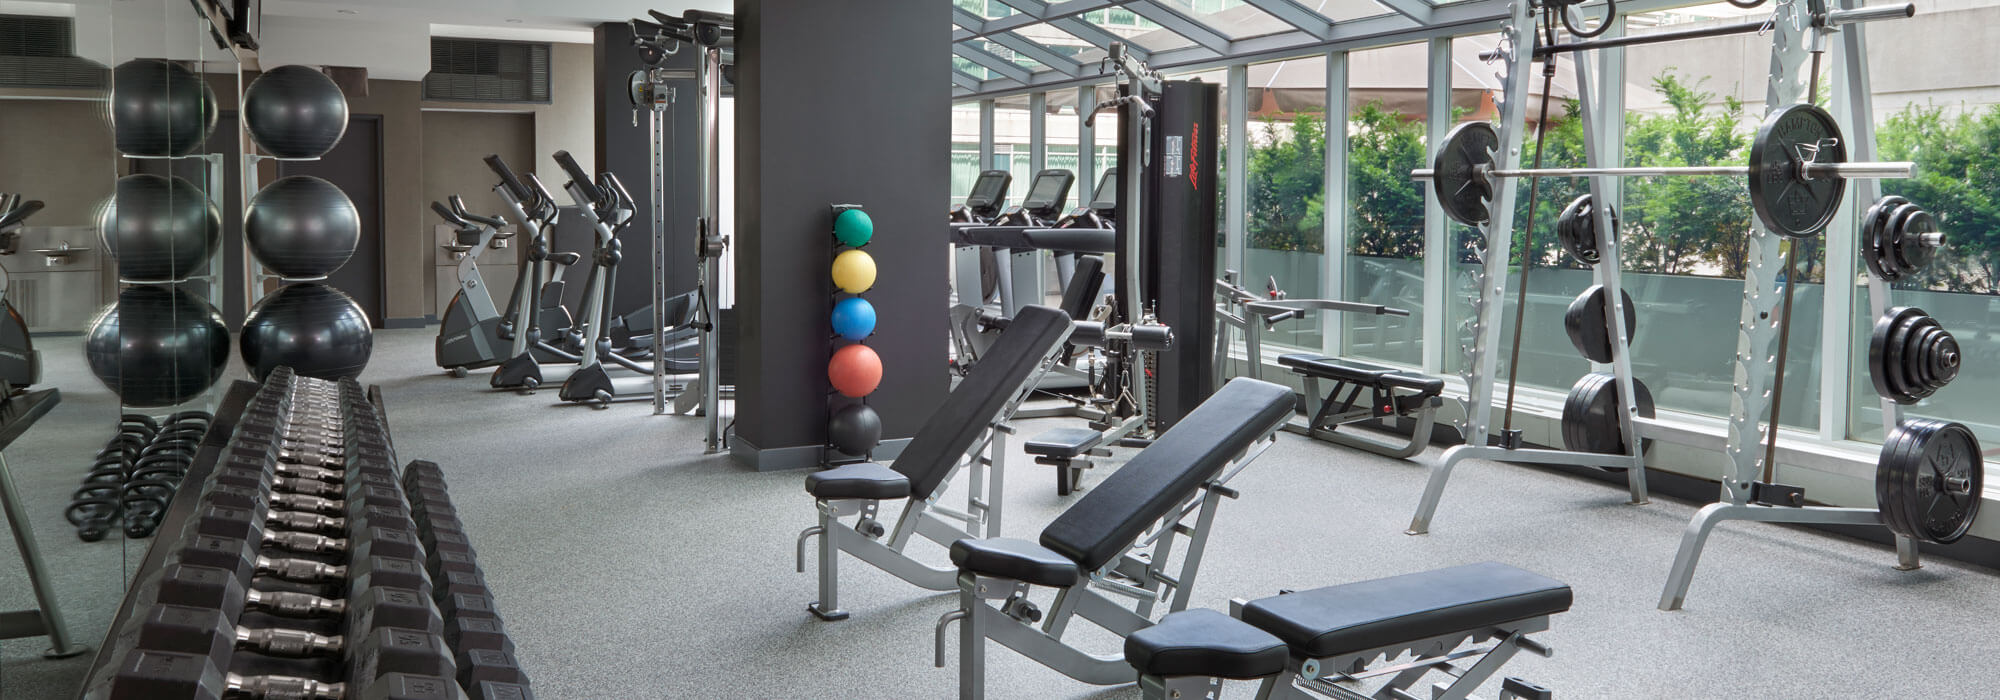 SoHo Hotel amenities renovated health club overlooking outdoor terrace